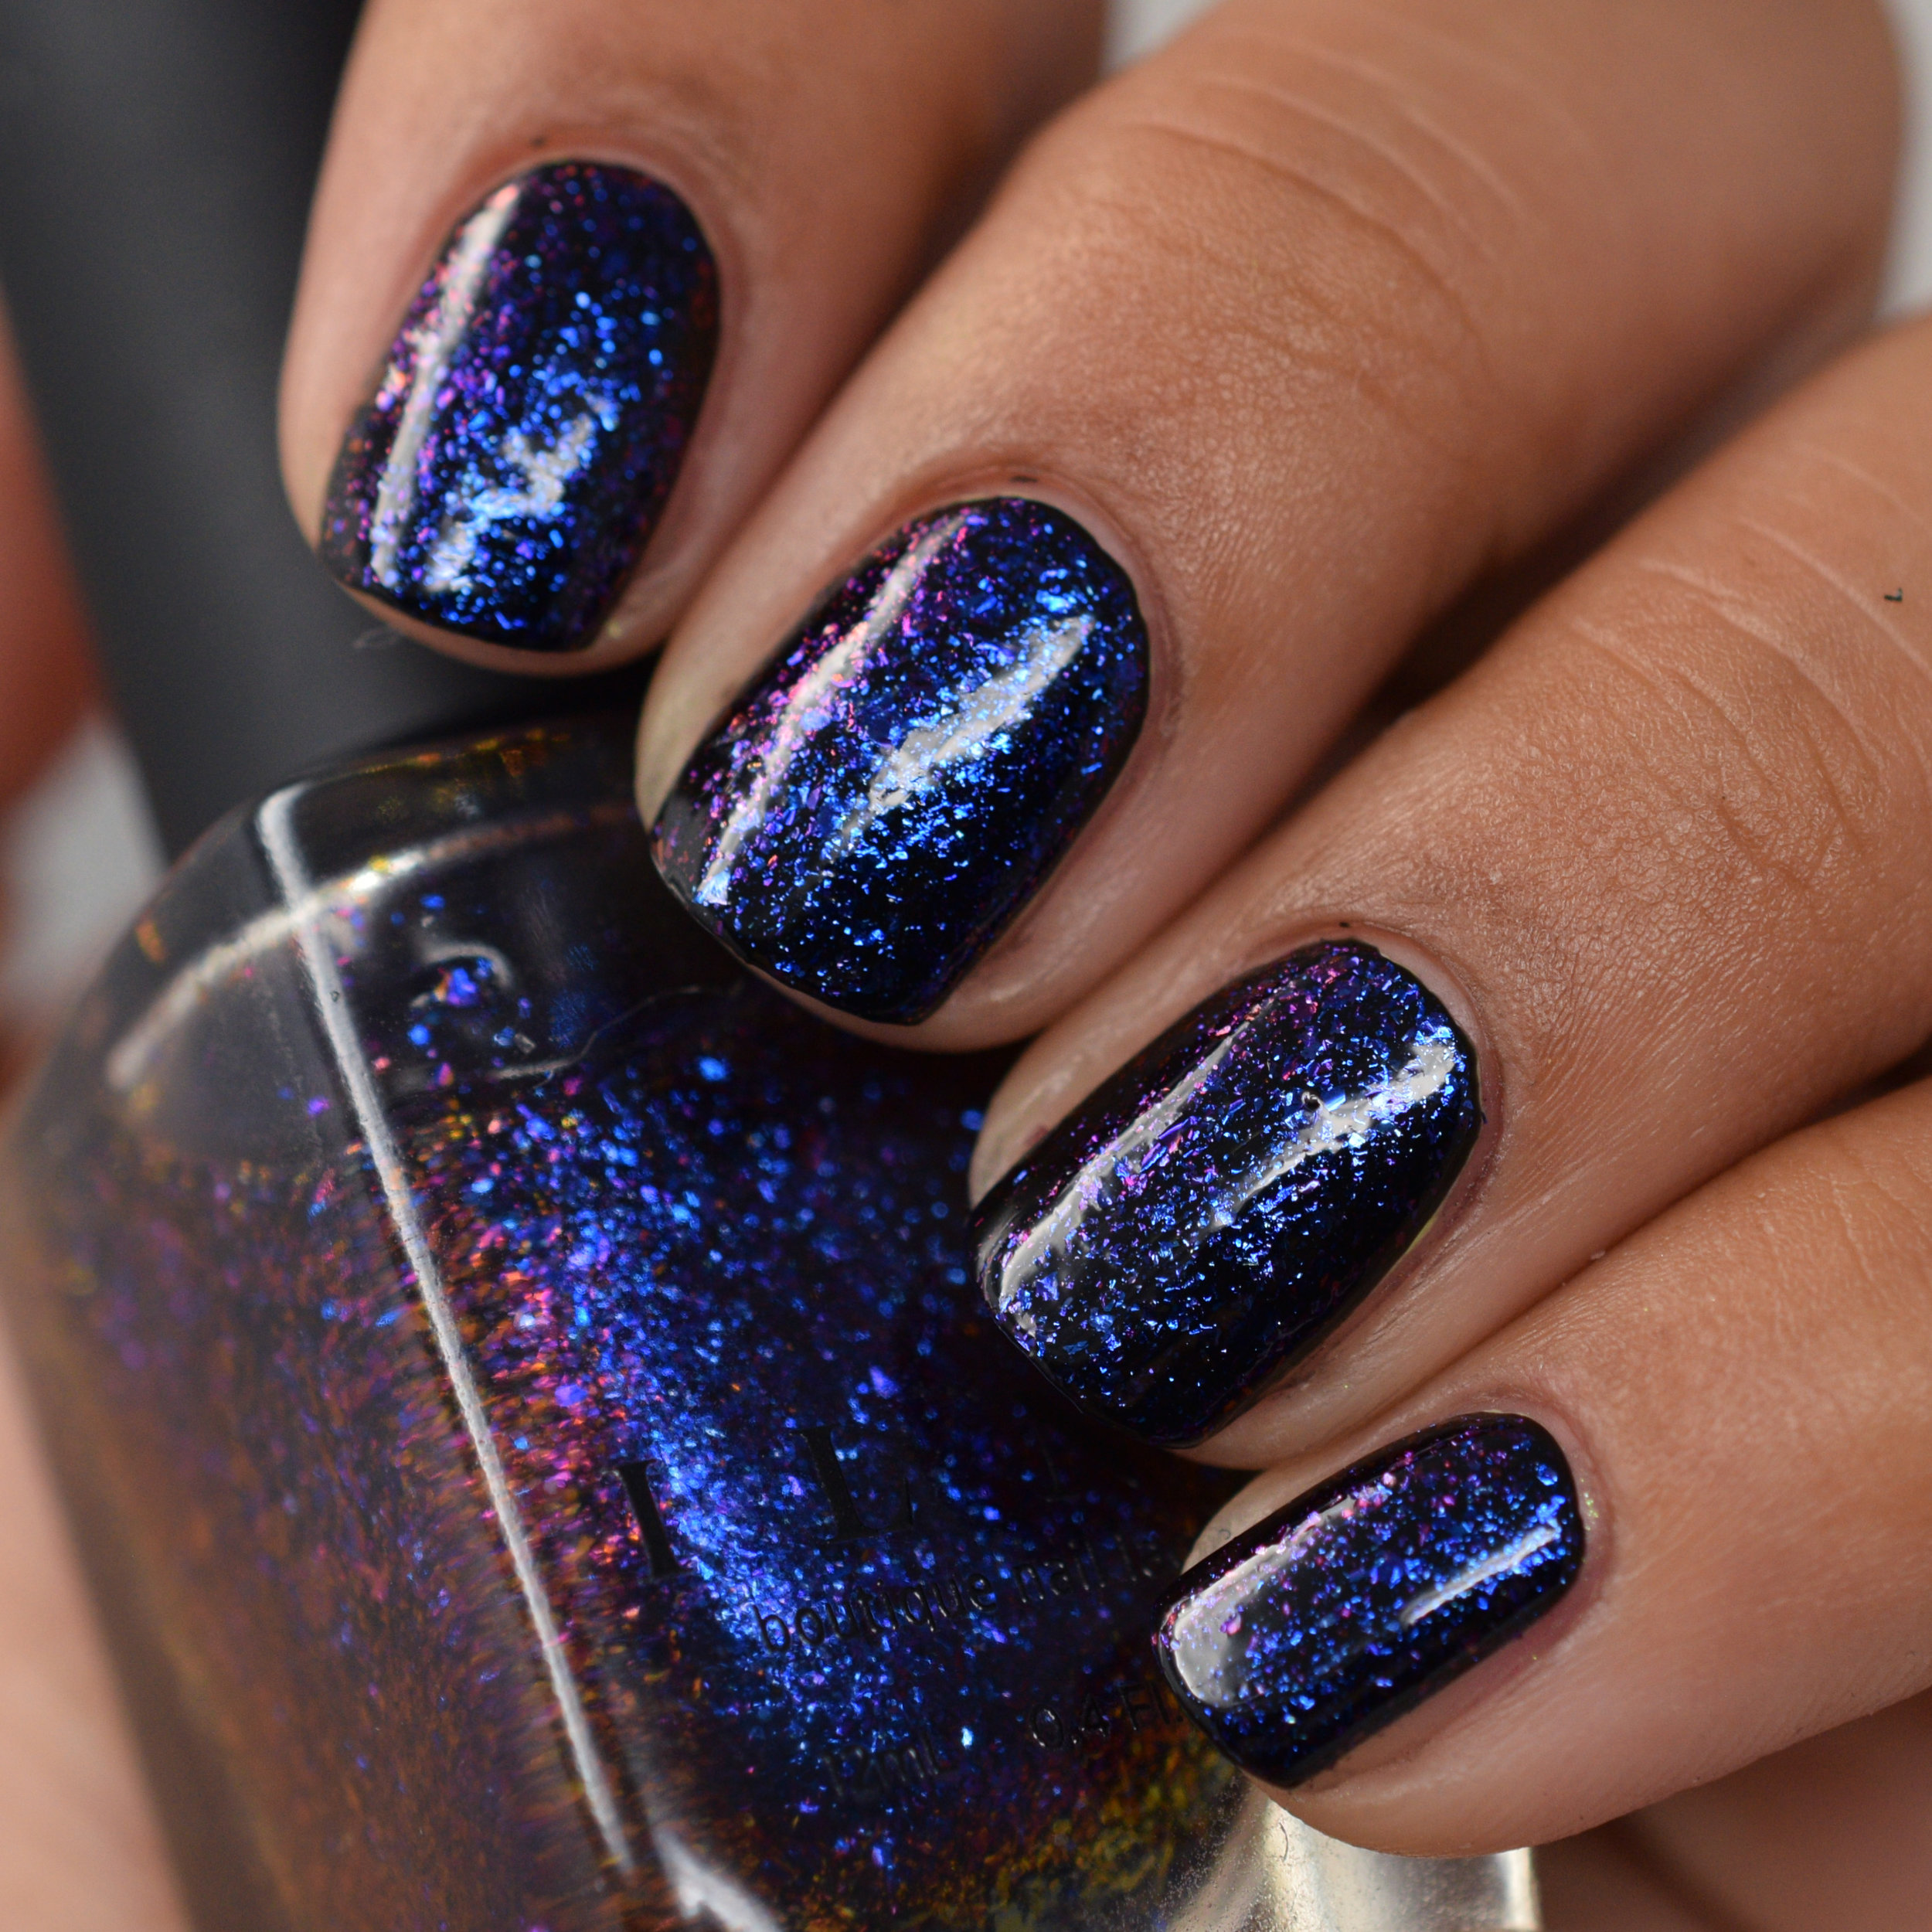 ILNP Ultra Chrome Flakies 2014 - Atlantis.jpg